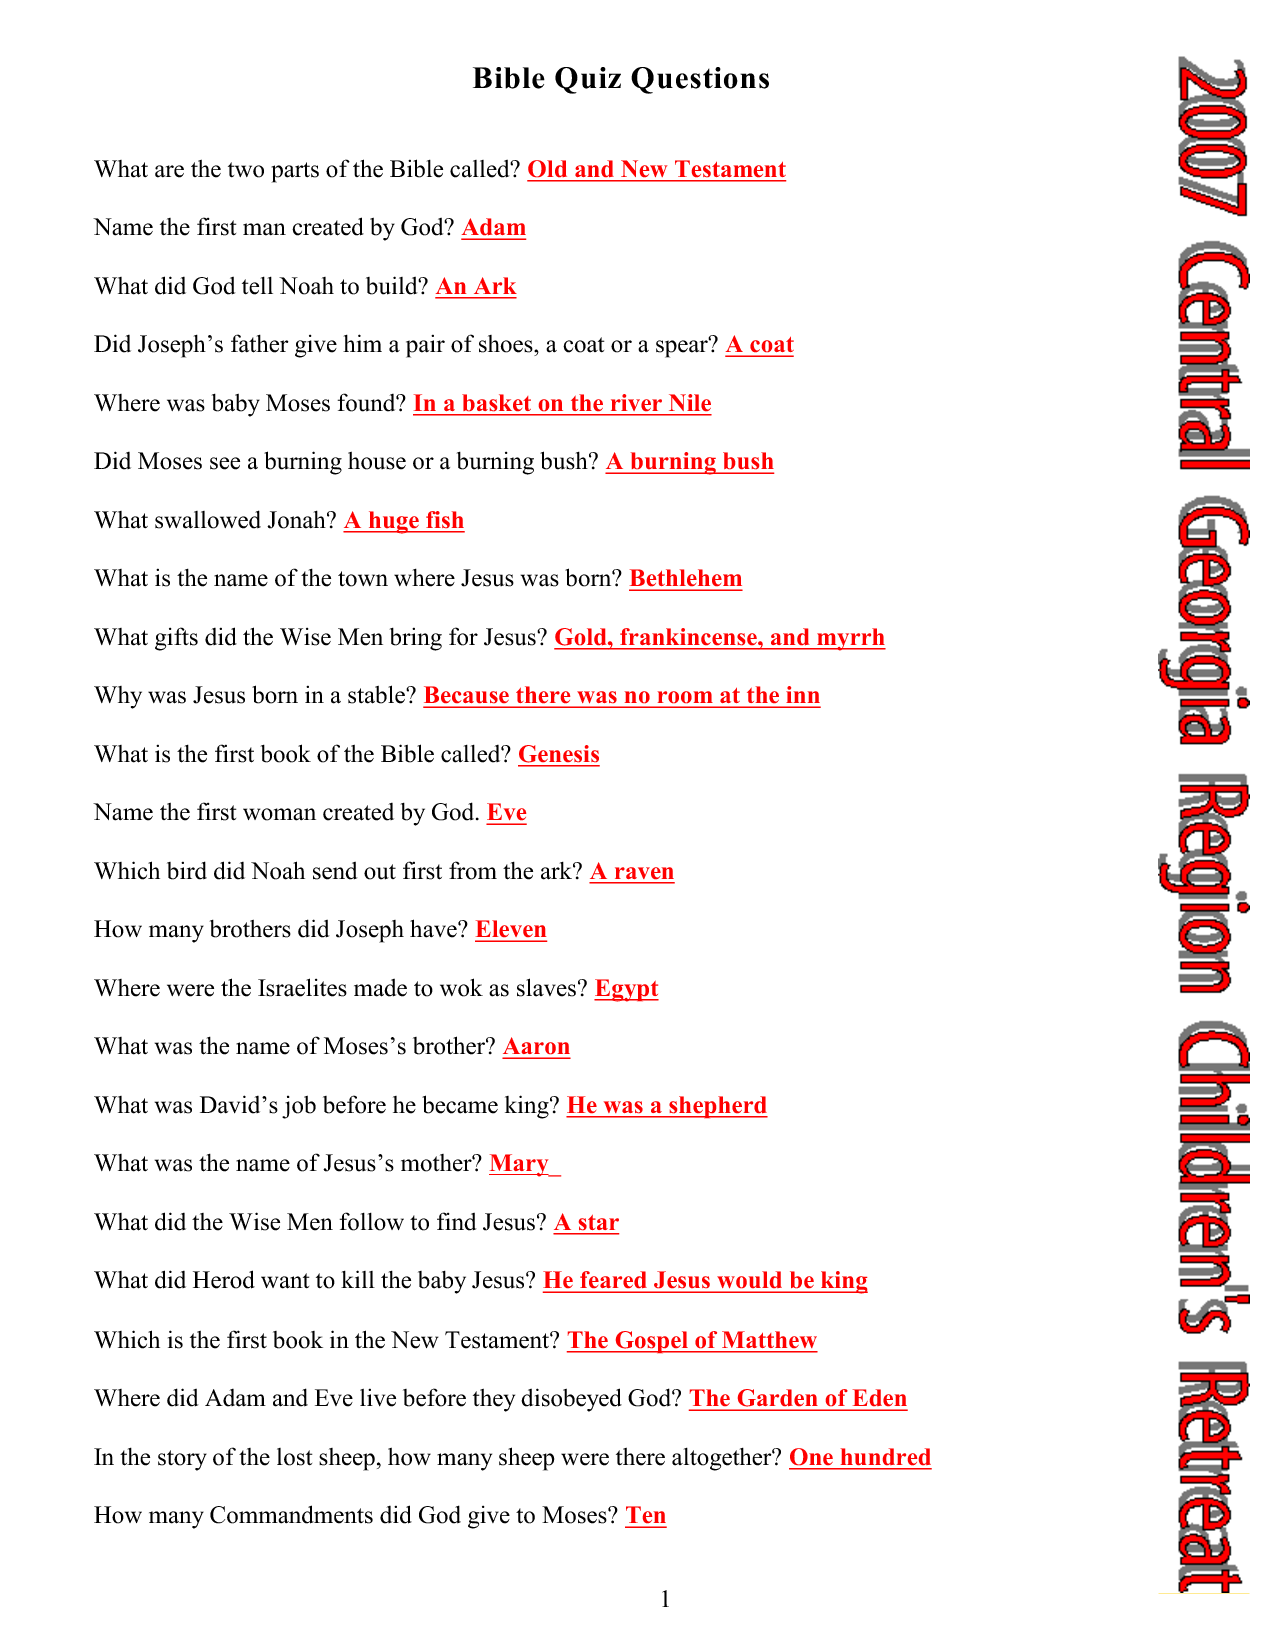 Bible Quiz Questions And Answers Bible Quiz Bible Study Questions Bible Quiz Questions